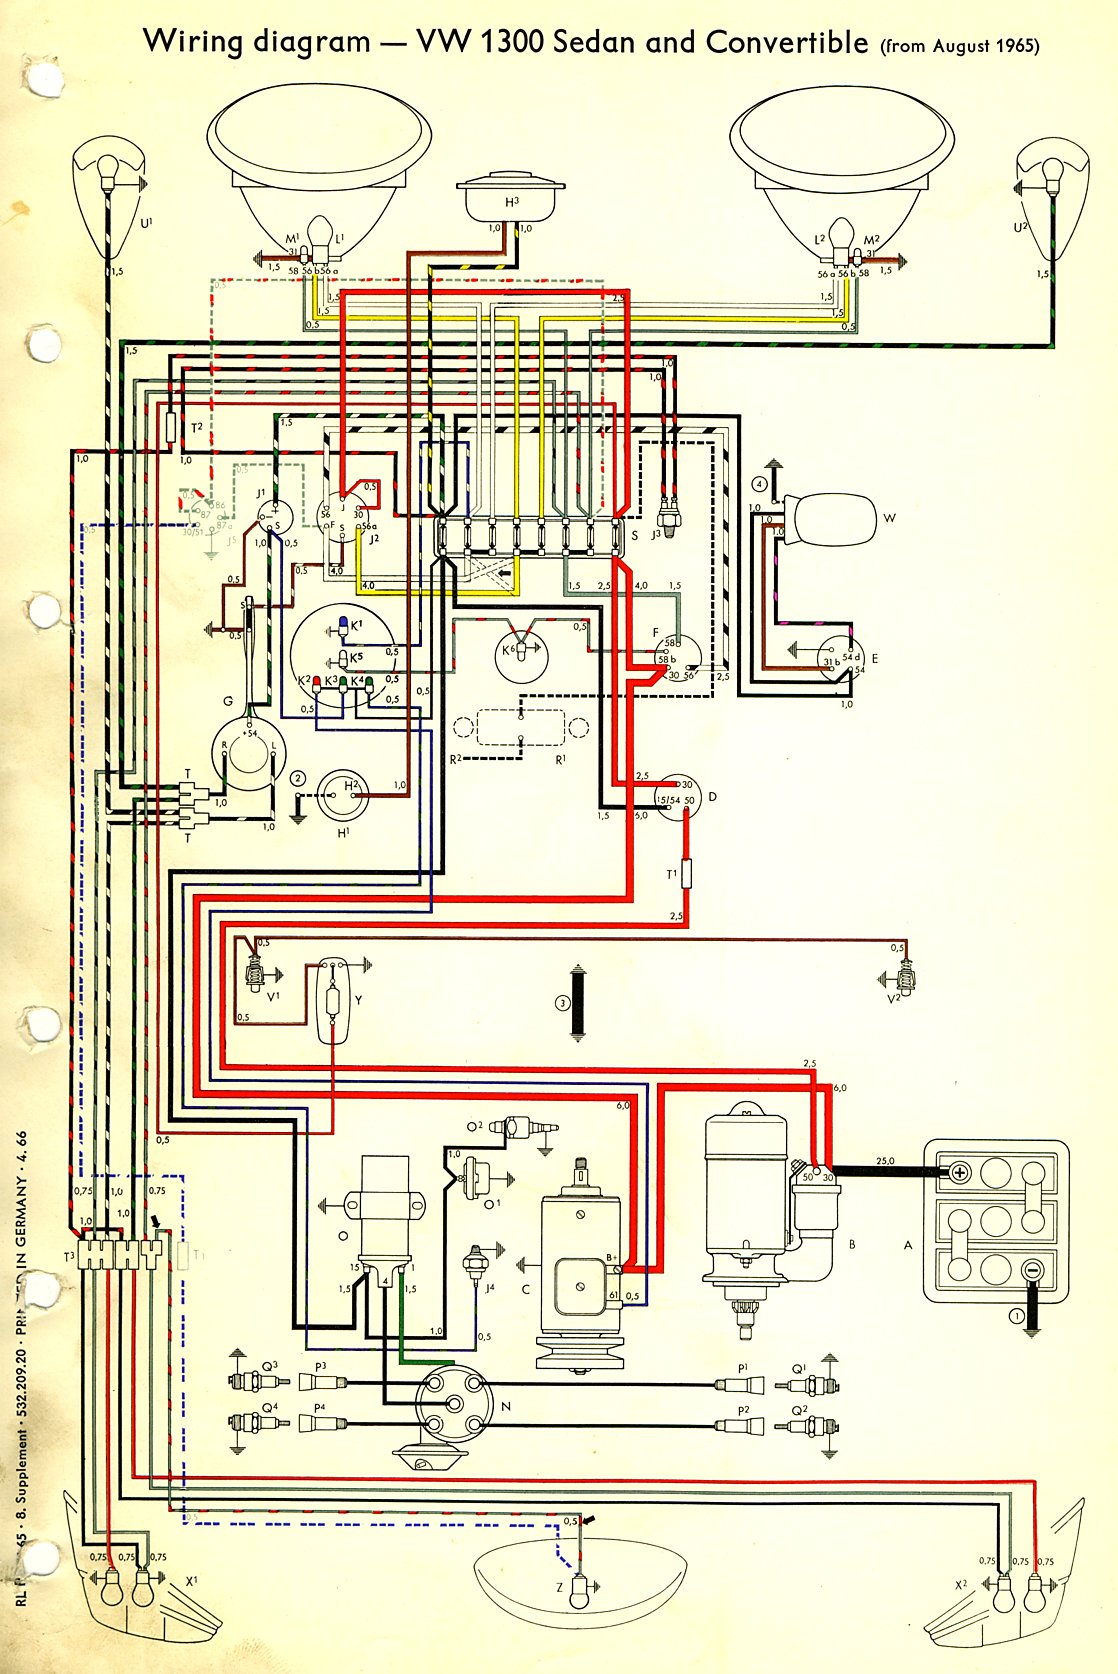 66 vw bug wire diagram of 66 vw bug wiring diagram